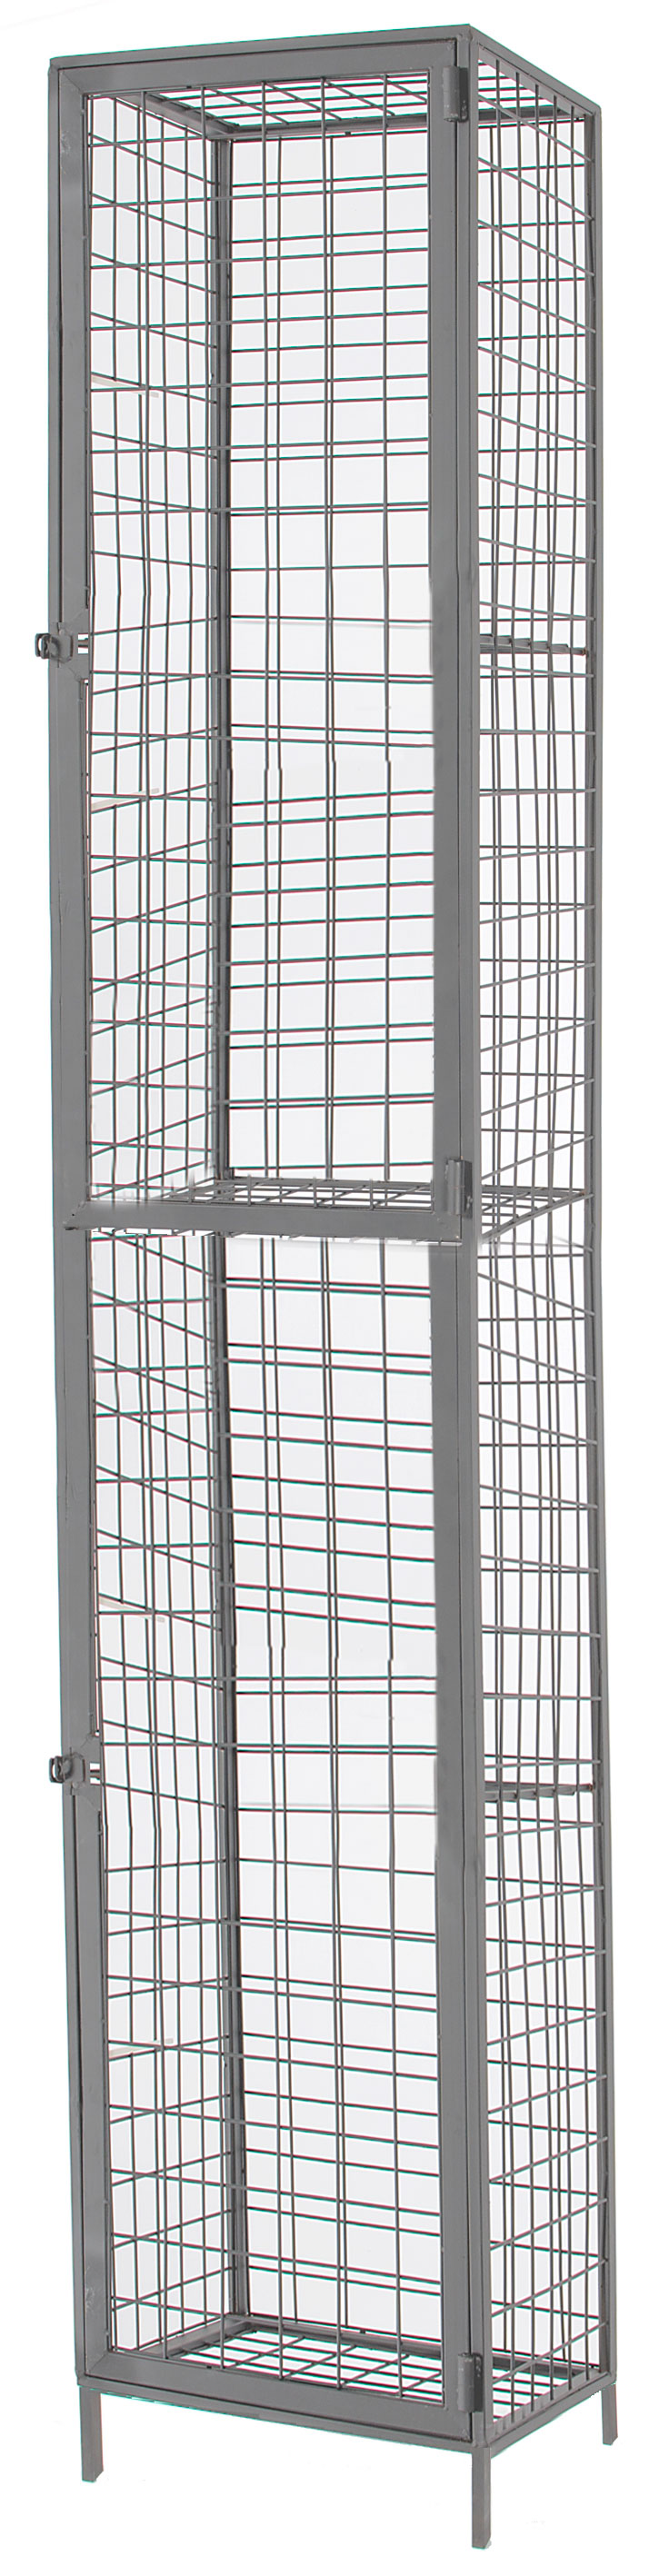 LOCKER GLOBAL WIRE - 2 DOOR